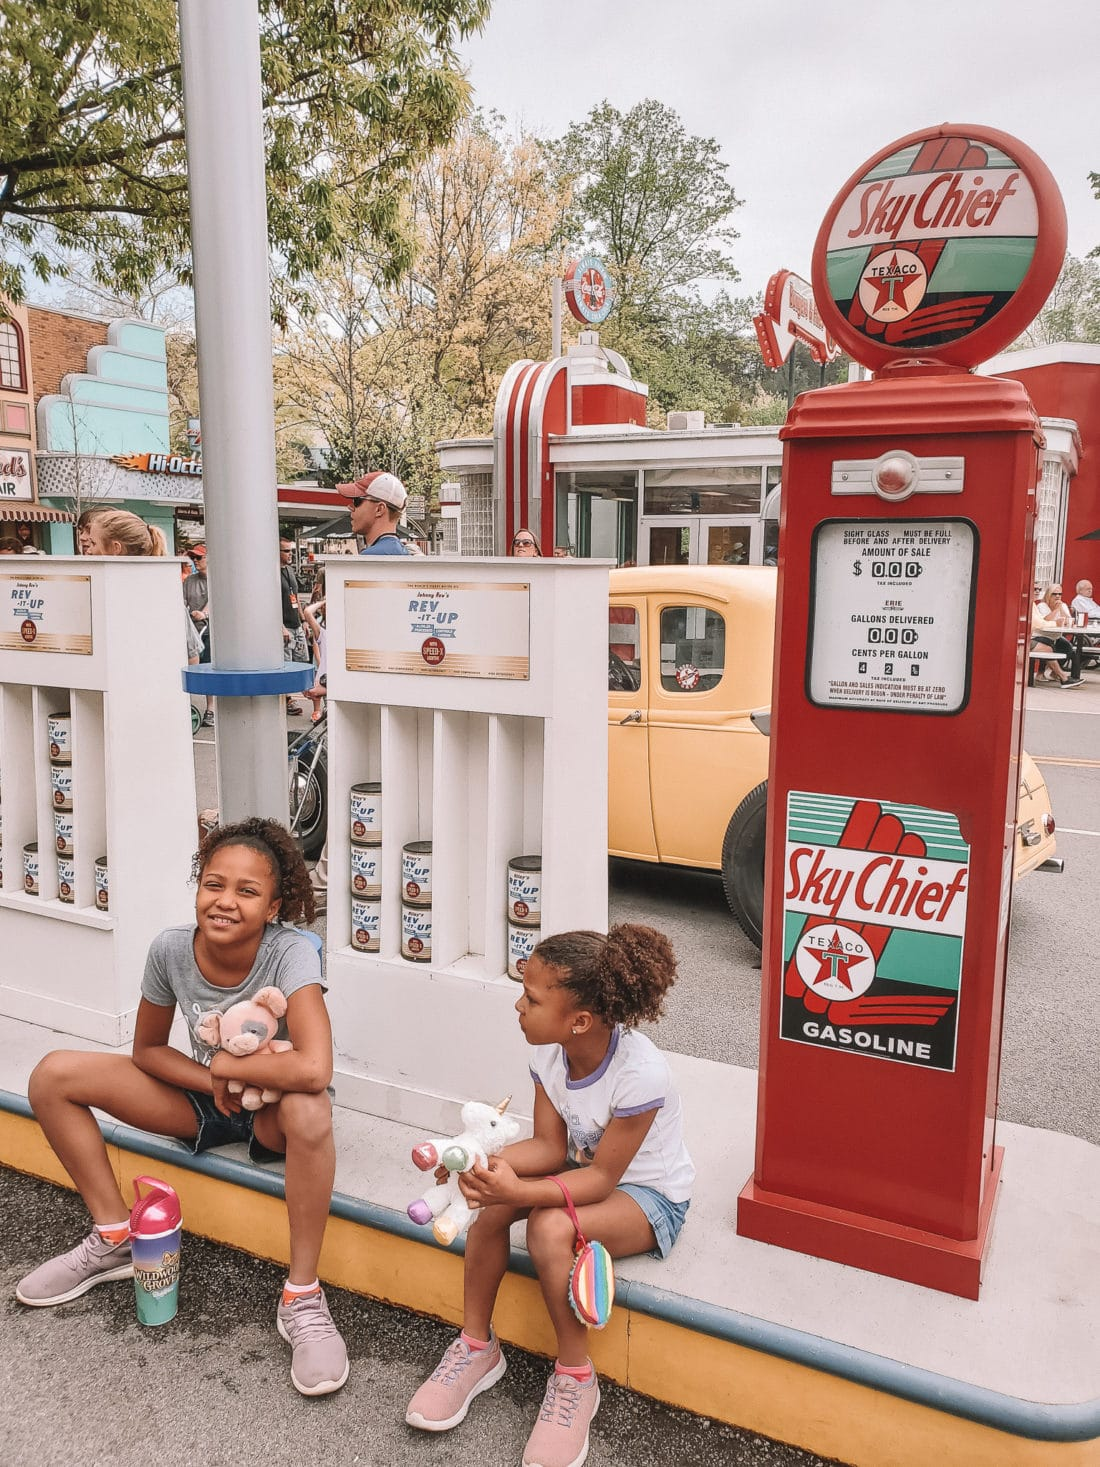 Dollywood Girls. My family spent the day playing and eating at the Dollywood theme park, and we are happy to report we had a blast! Read all about our trip and learn why Dollwood is a must visit destination while you are in Pigeon Forge, TN.